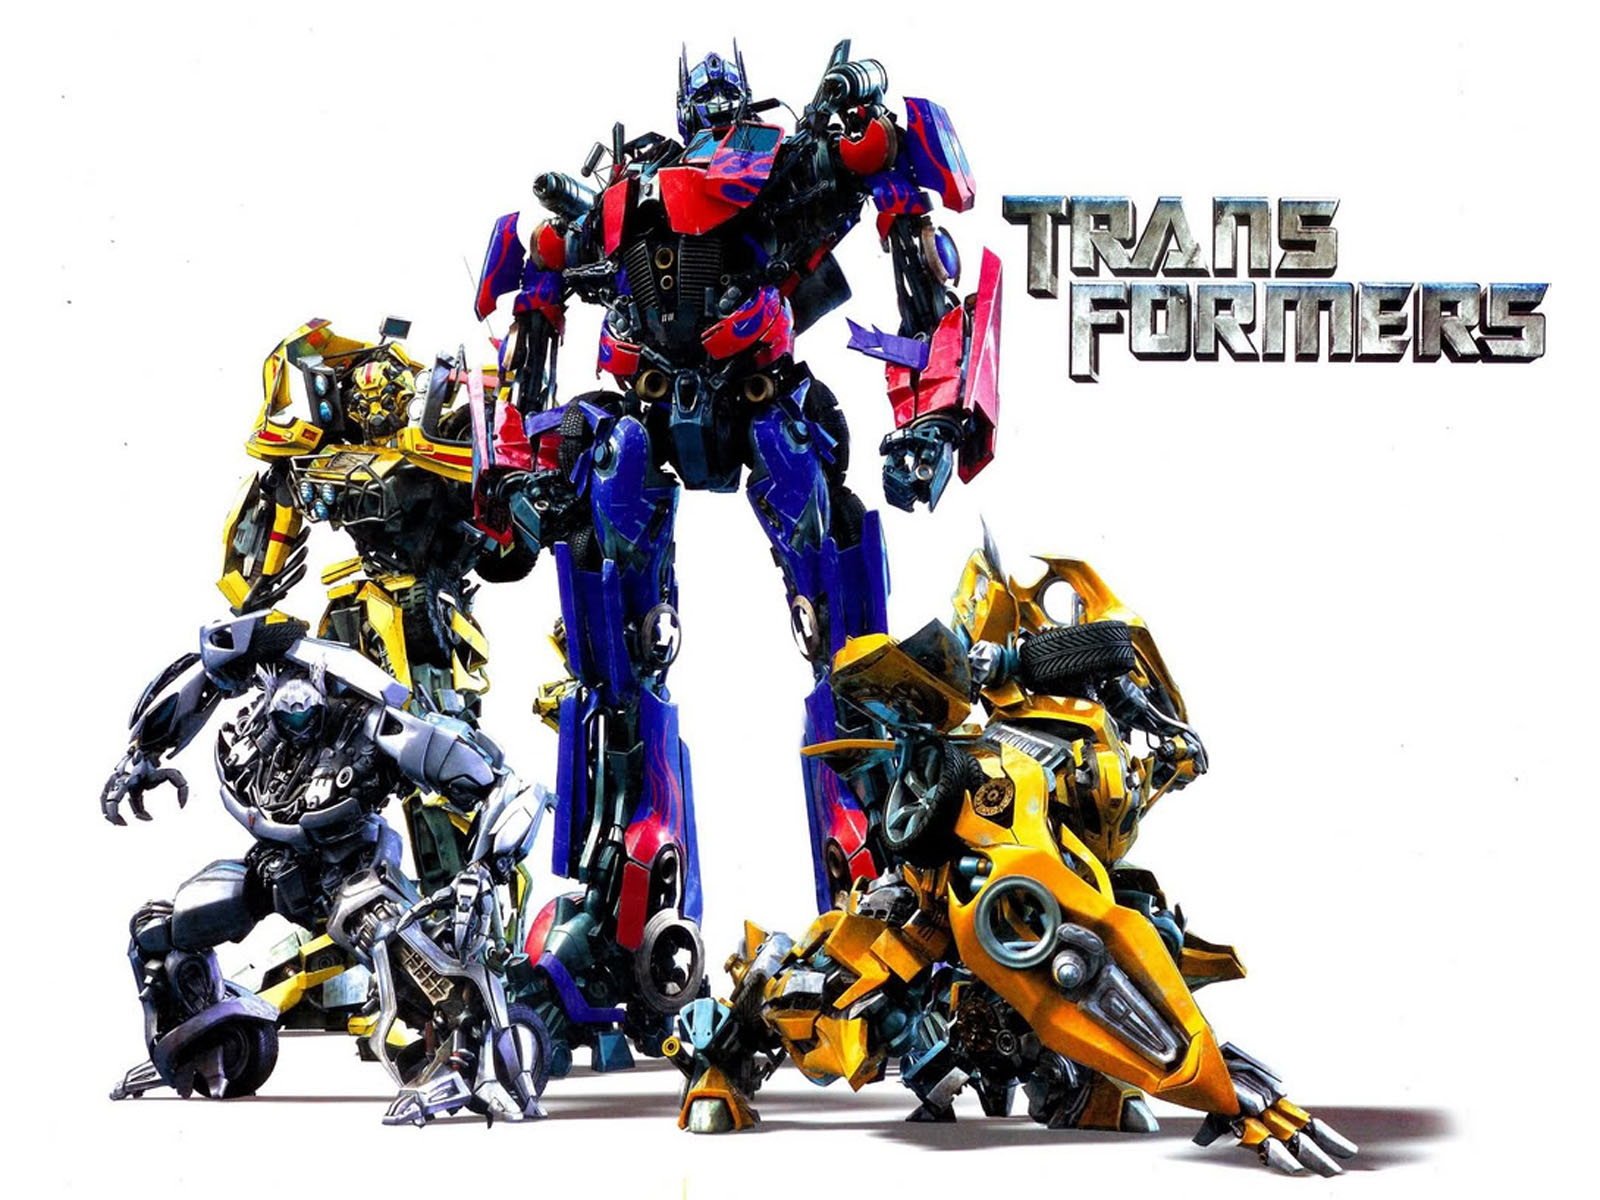 Transformers Wallpapers, Backgrounds, Images 360x640